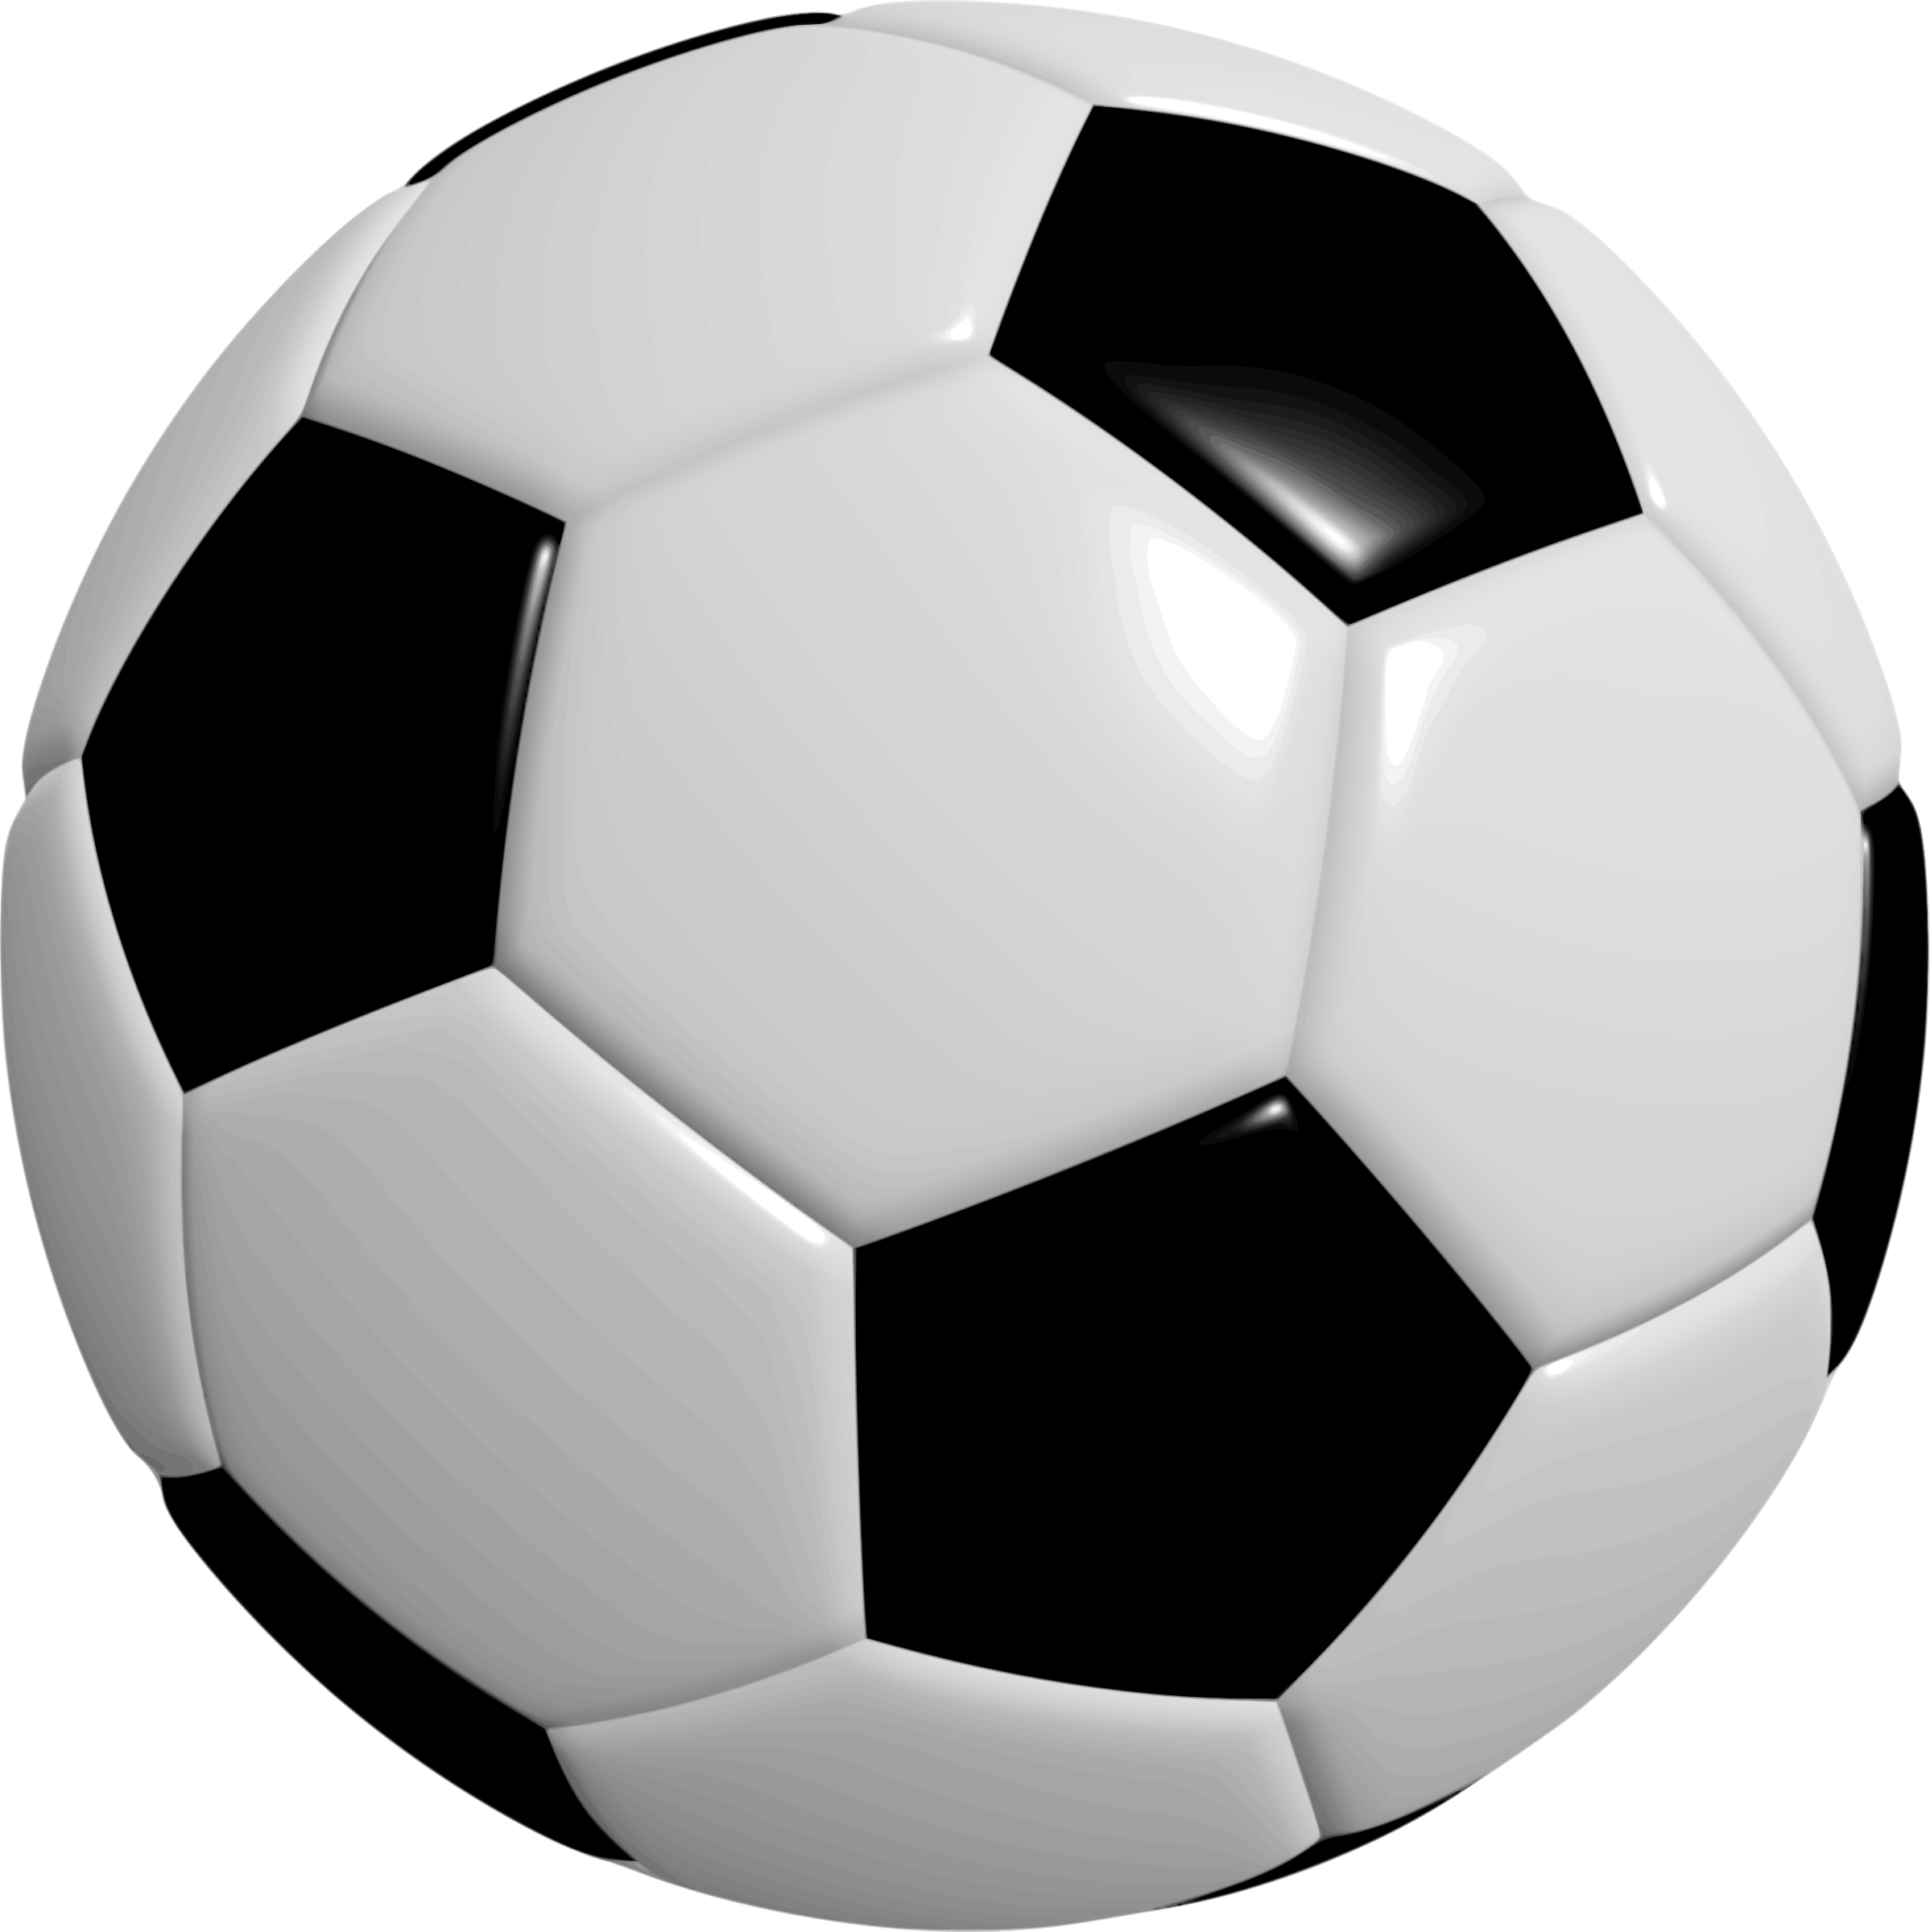 Football (Soccer Ball) Icons PNG - Free PNG and Icons Downloads